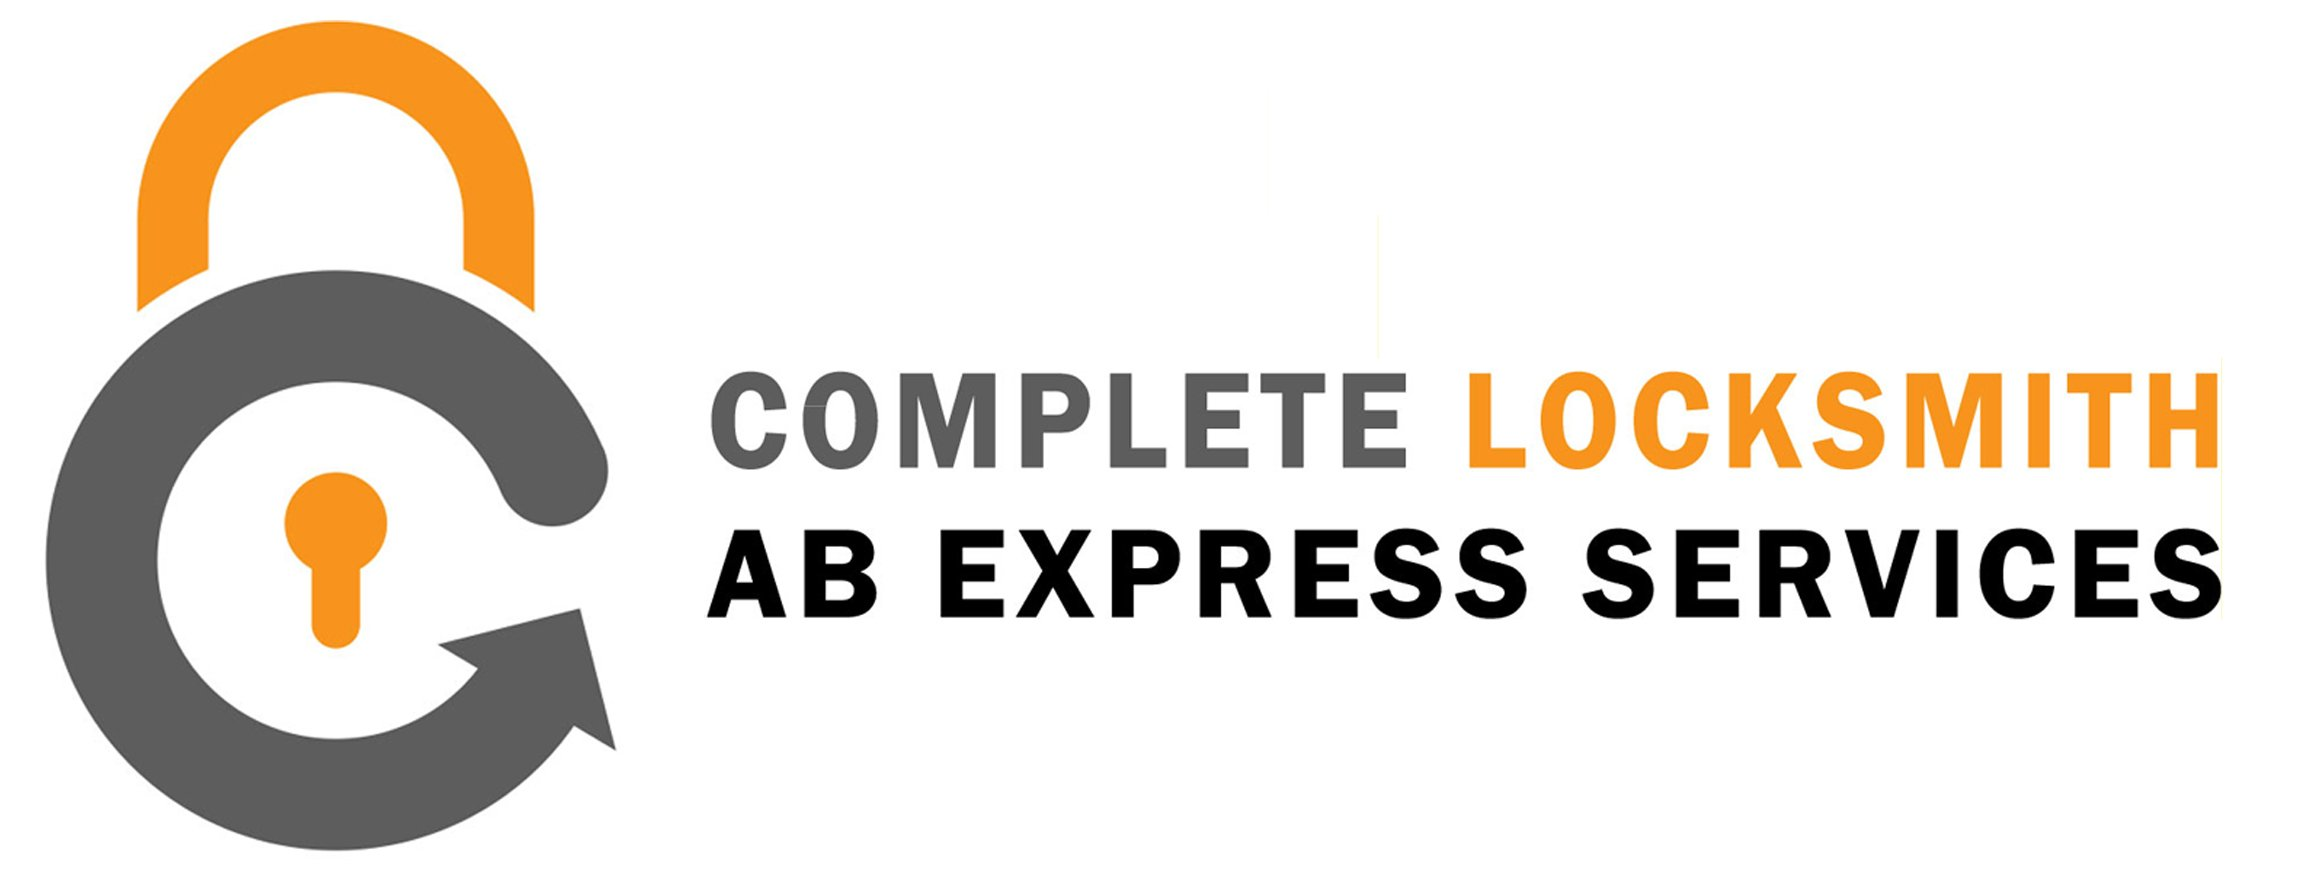 Complete Locksmith – AB Express Services